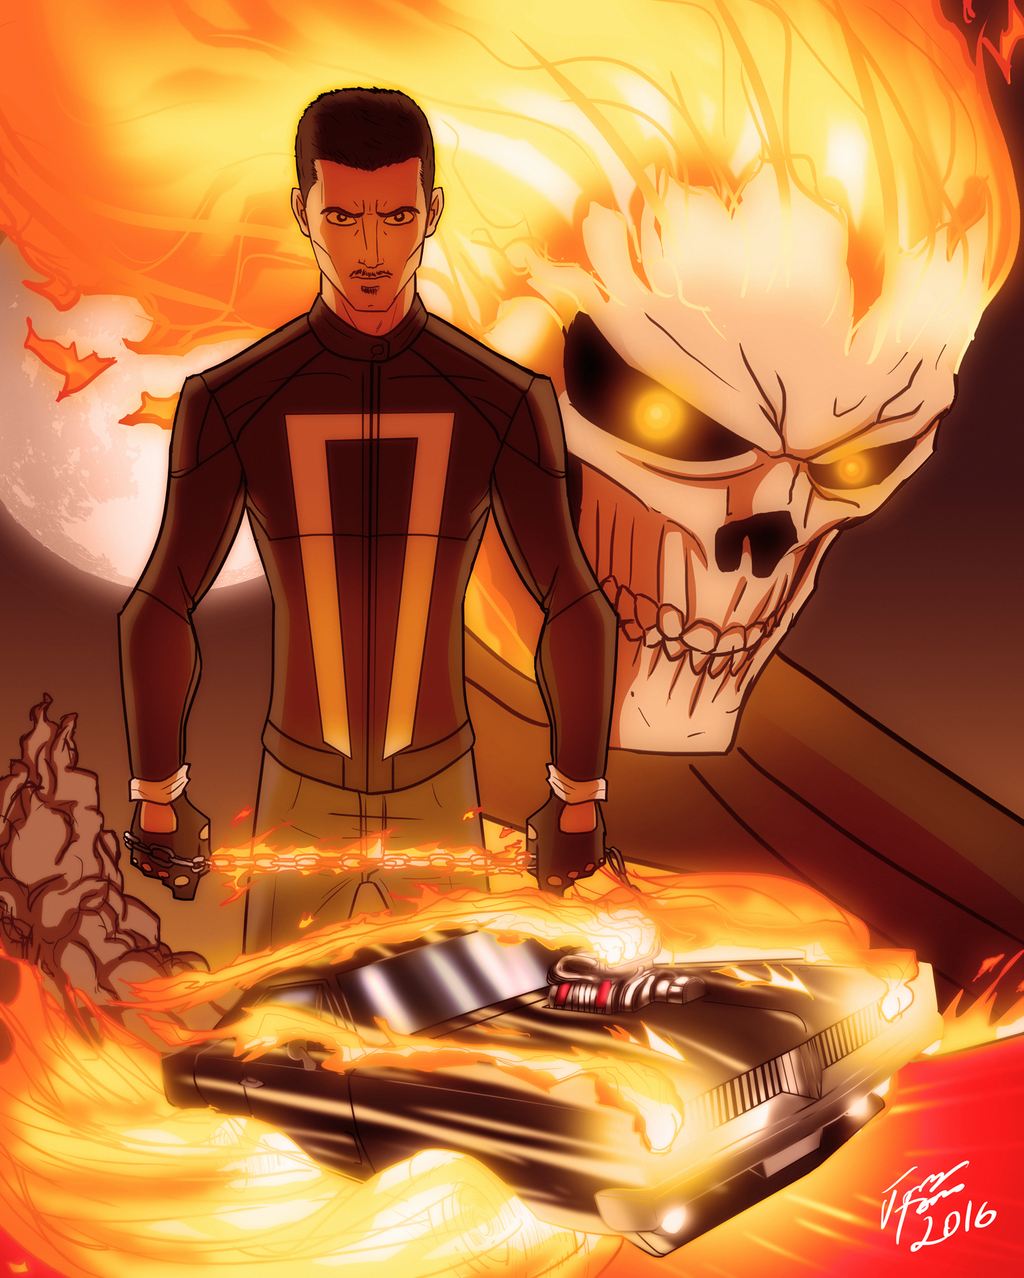 Ghost_rider_by_jonathanserrot-damxxo1.png (1024×1278